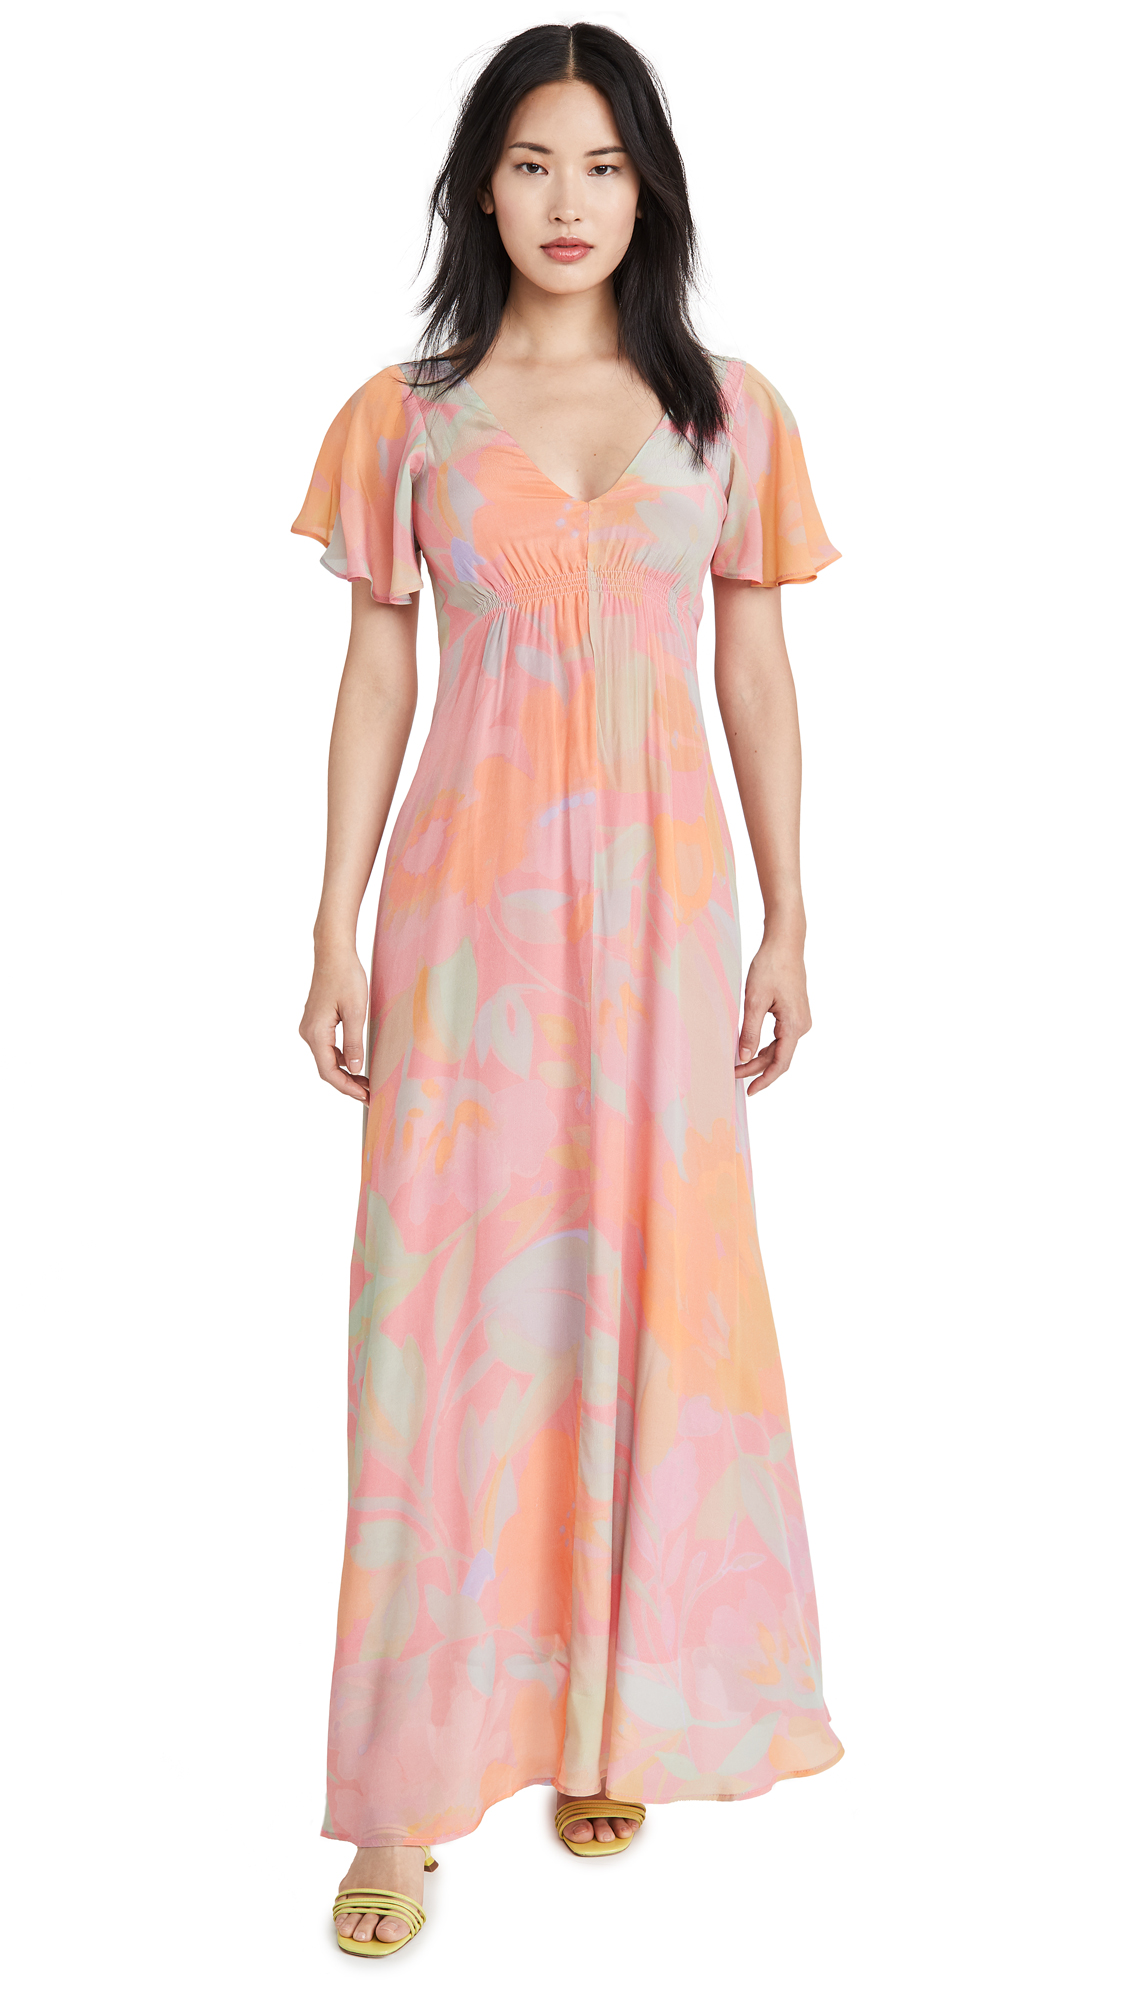 VEDA Corazon Crepe Dress - 30% Off Sale